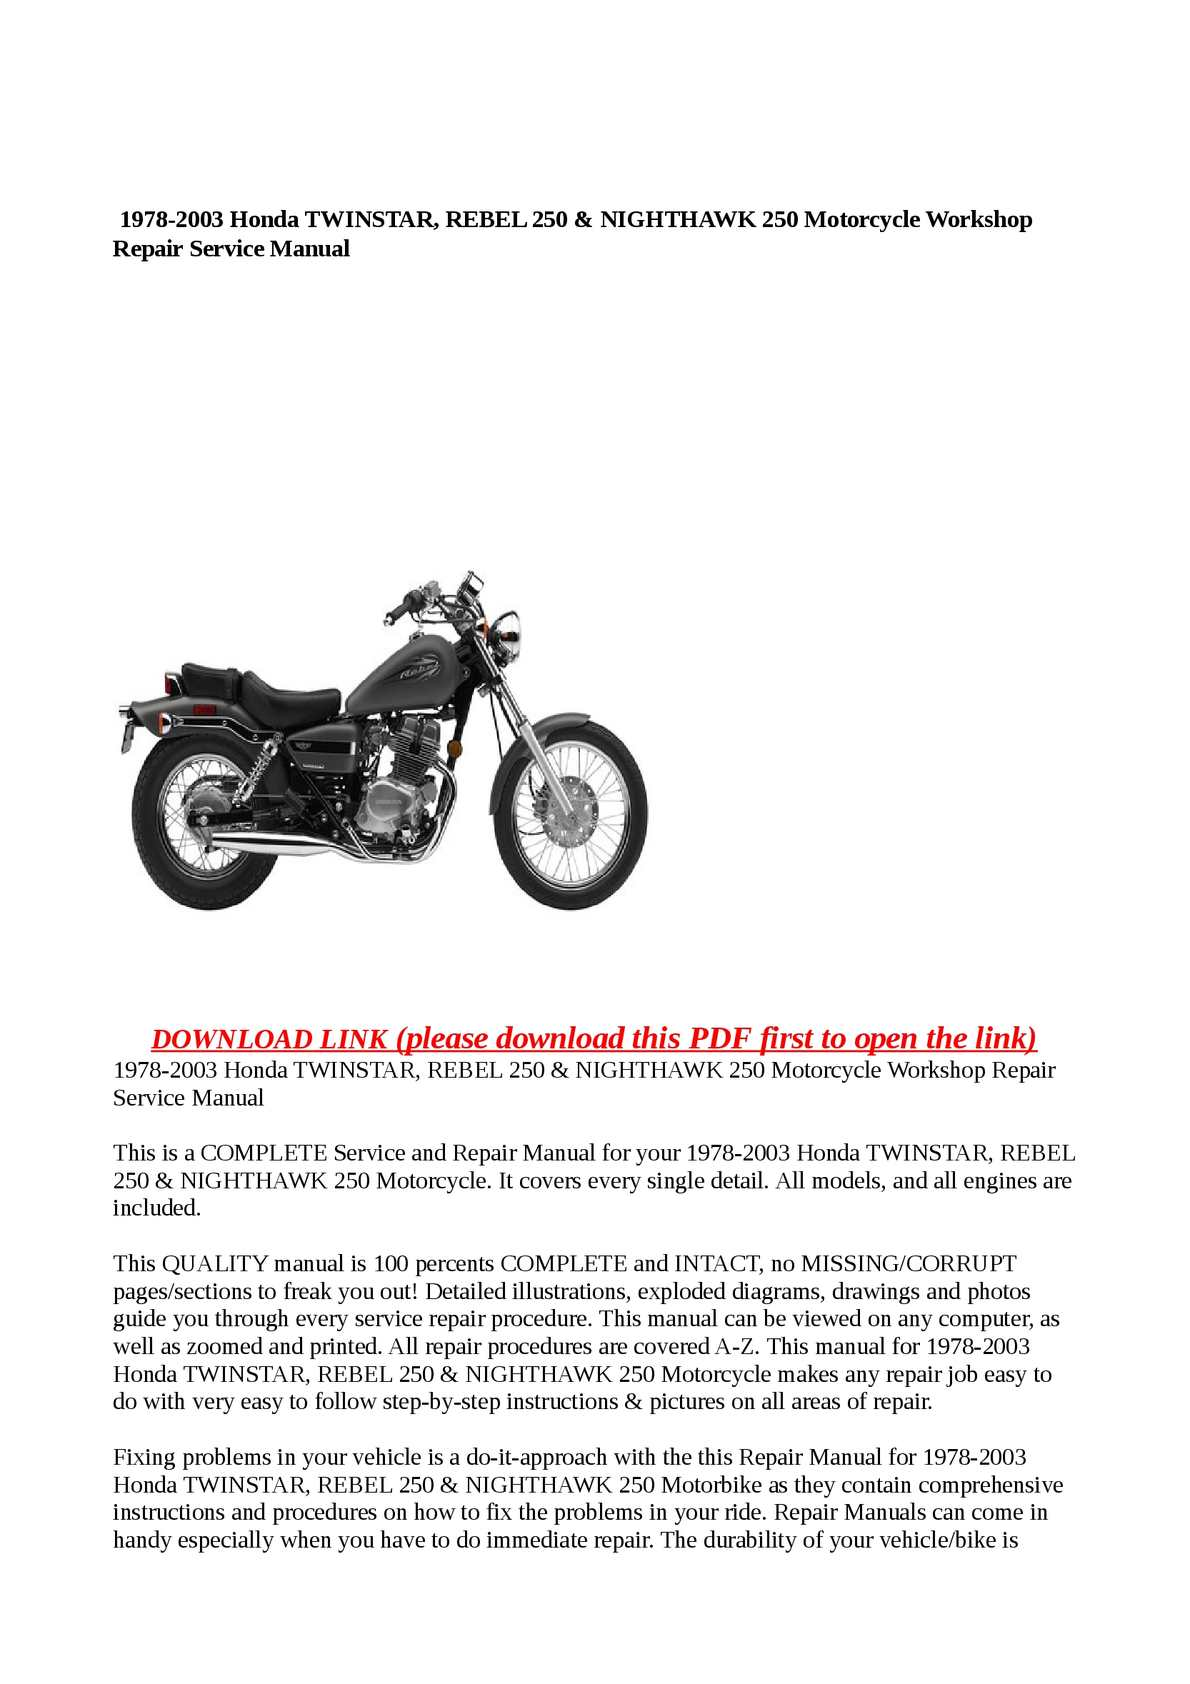 1985 Honda CMX250C Rebel Motorcycle Owner Manual